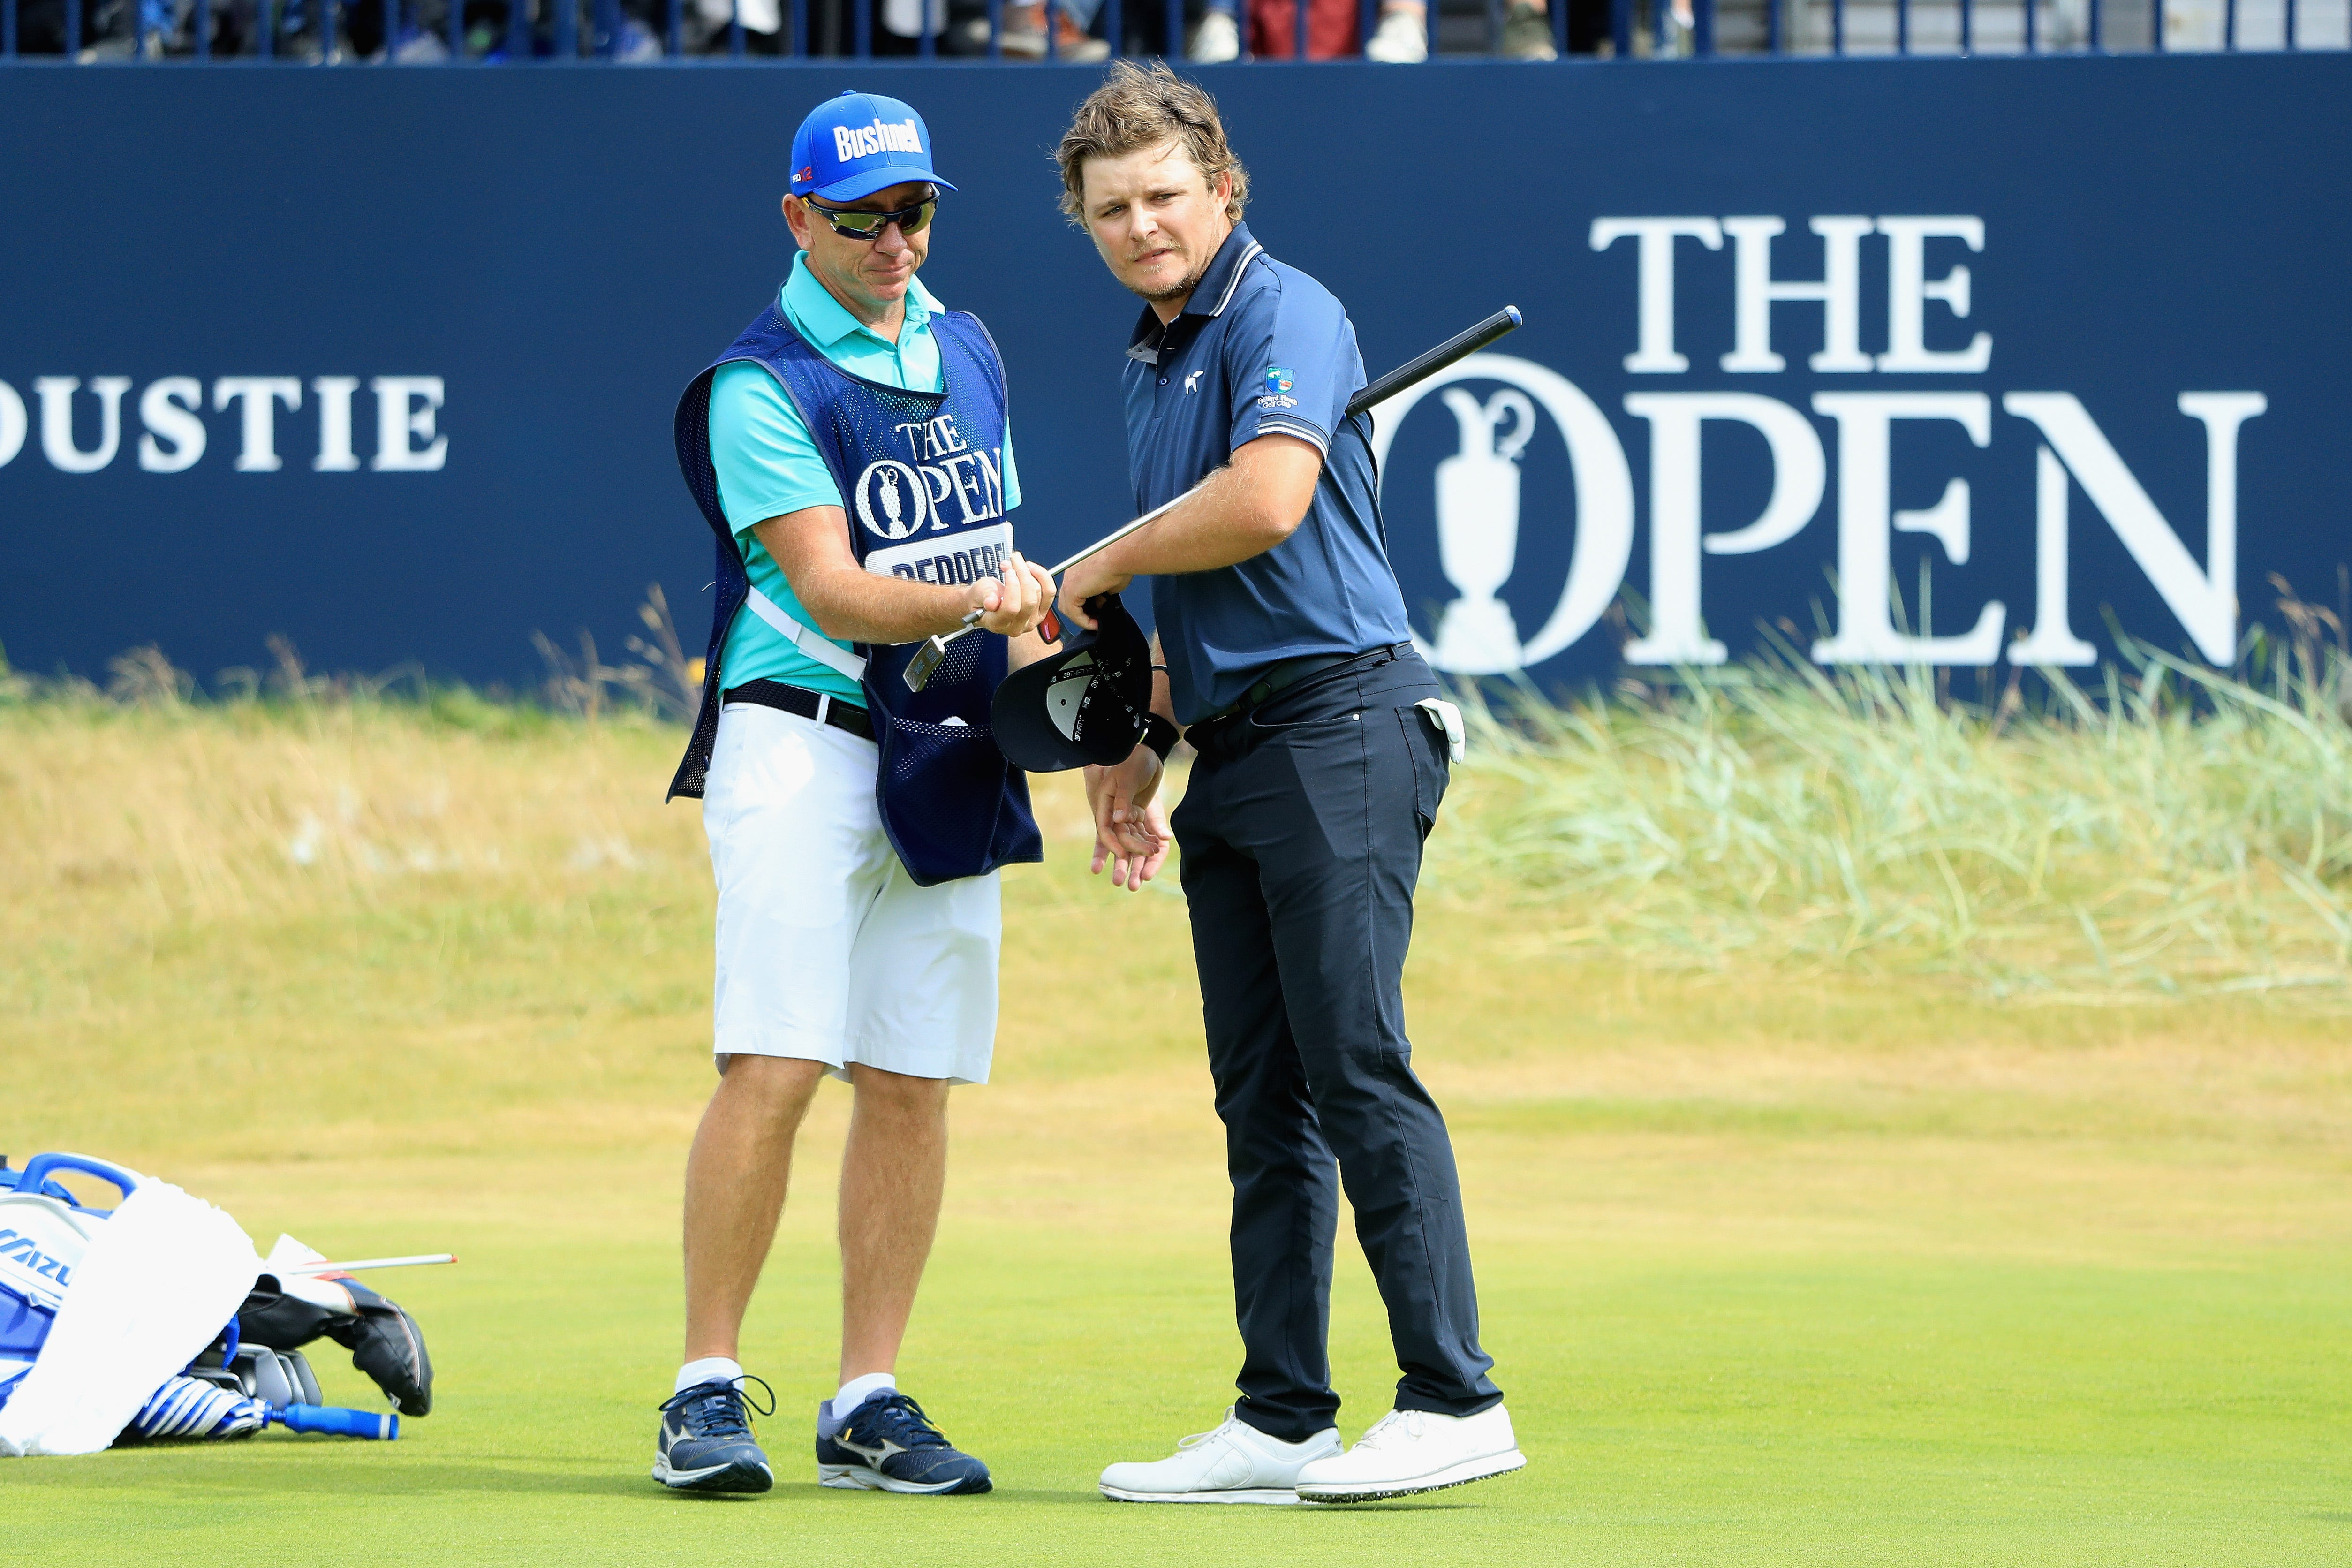 english-golfer-admits-he-was-hung-over-but-finishes-sixth-at-british-open